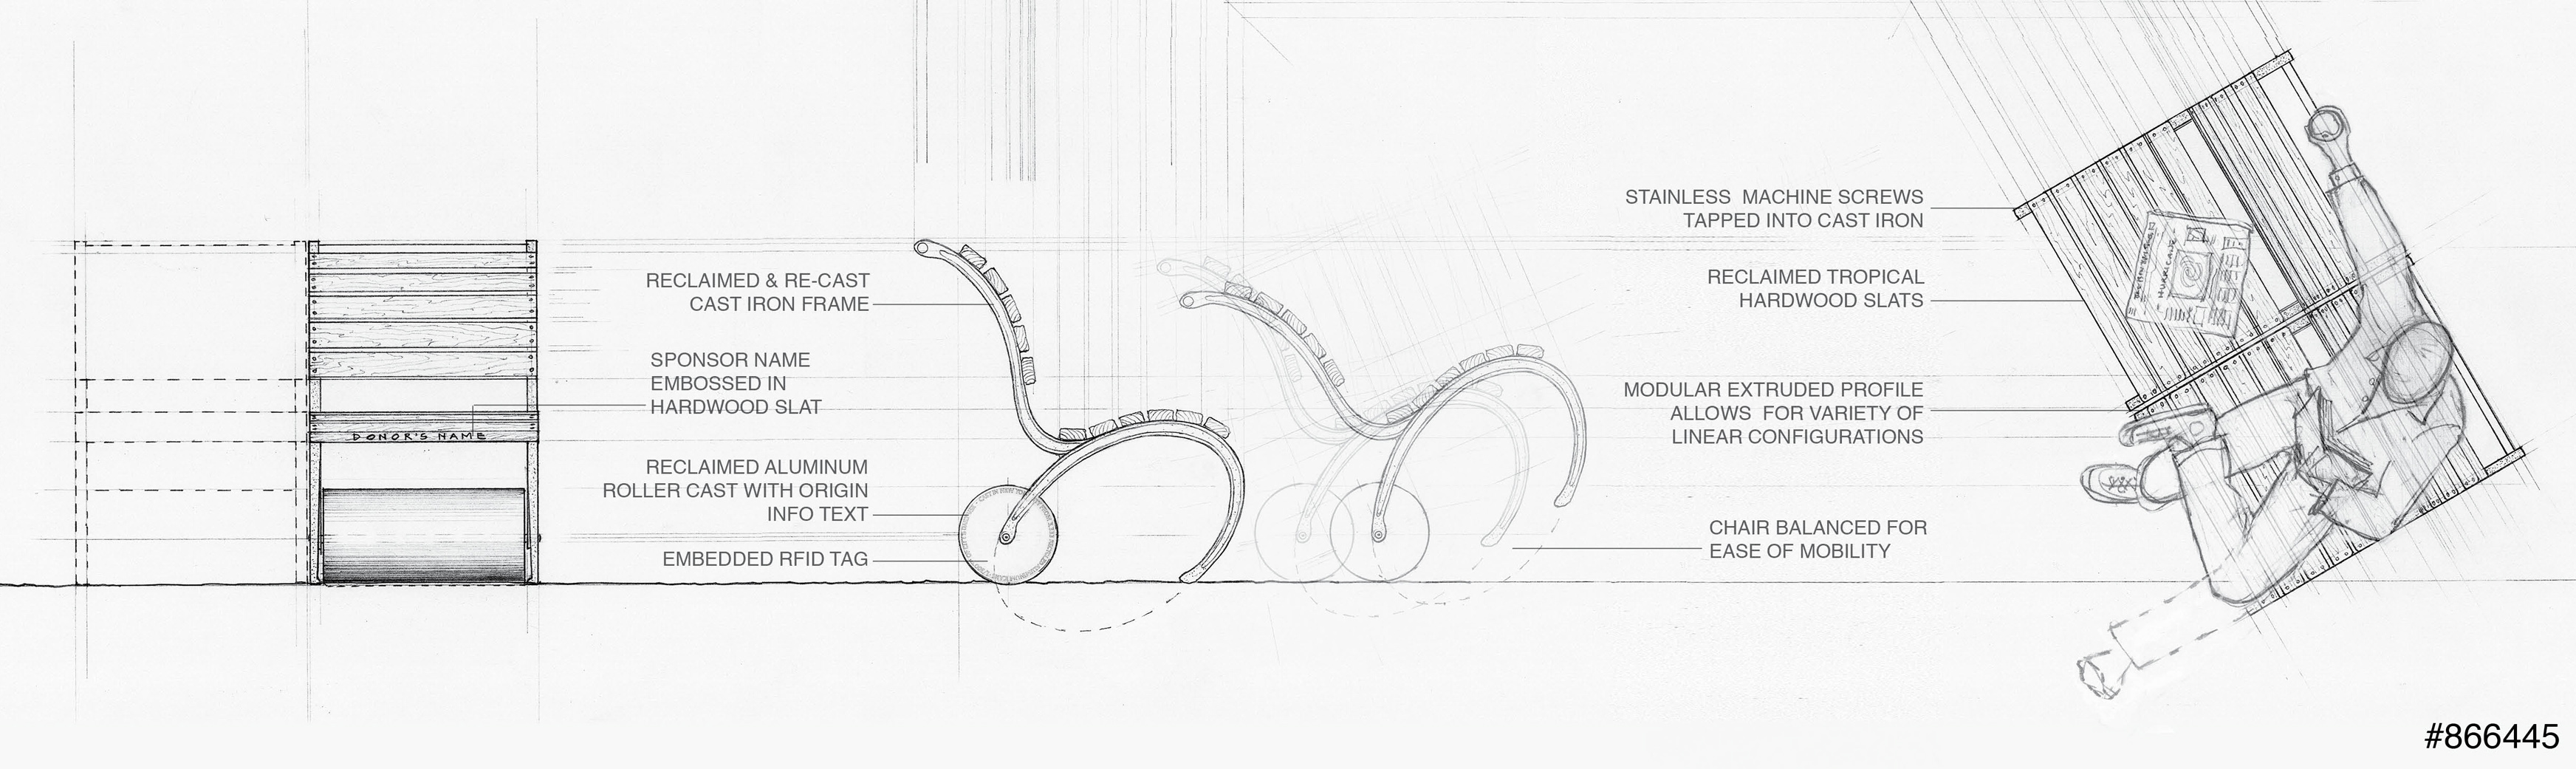 Chair design drawing - Battery Park Chair Design